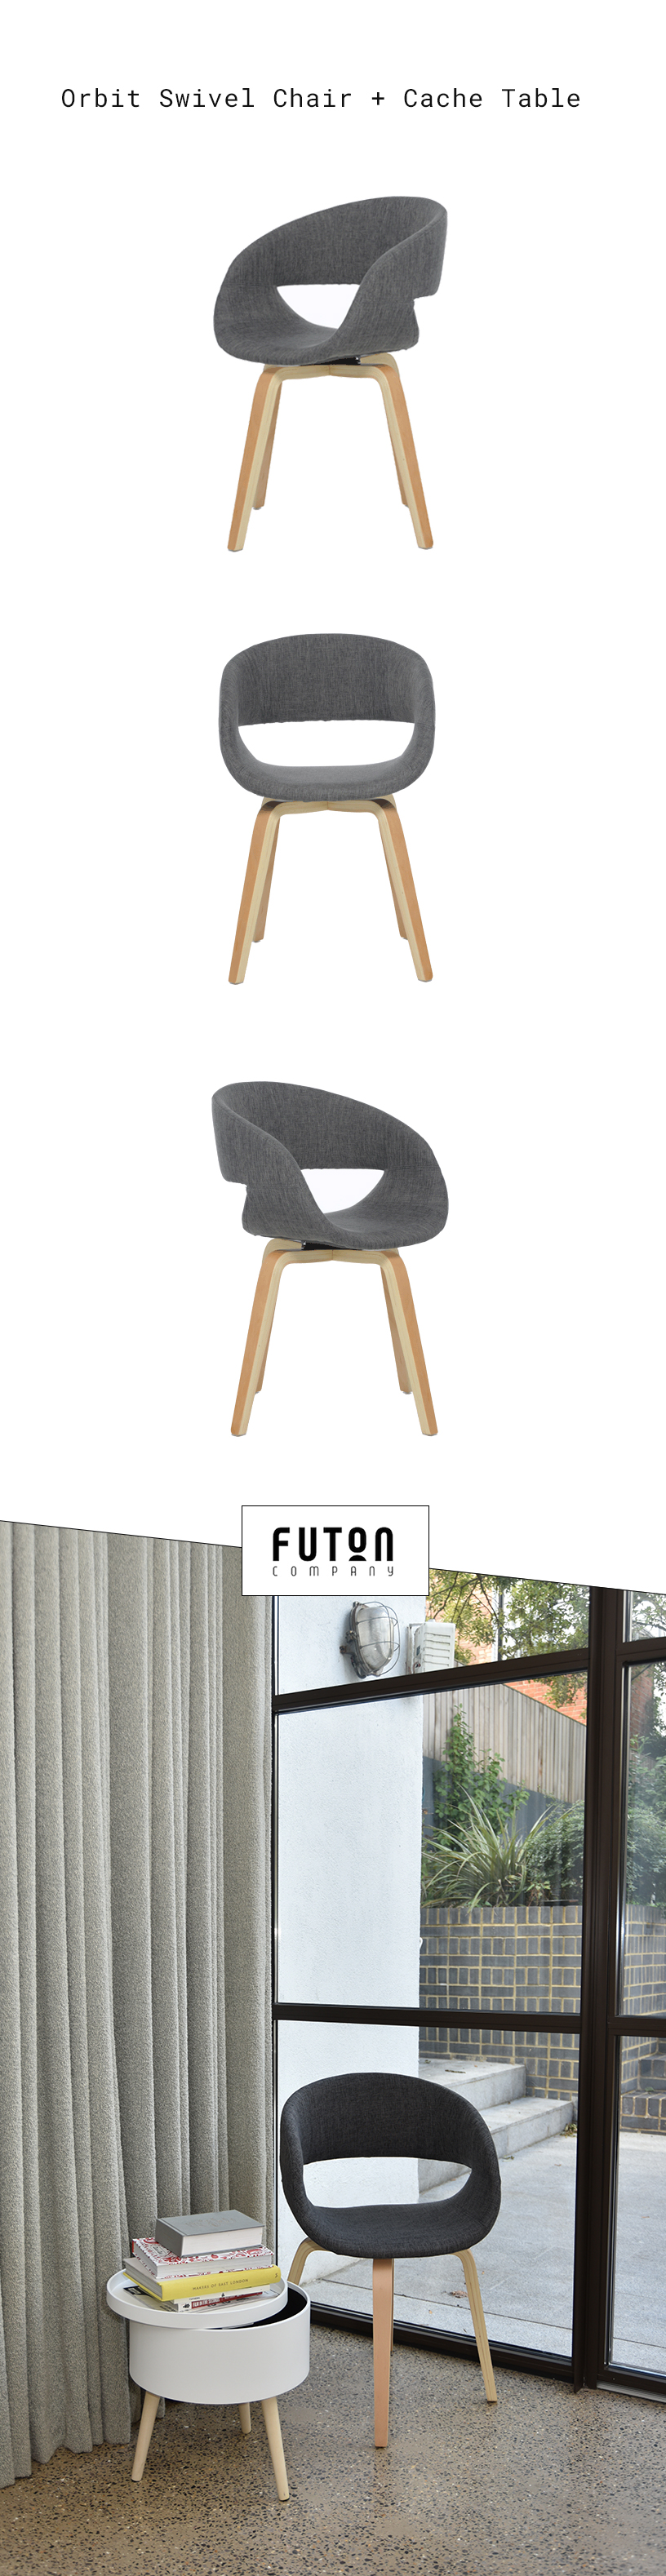 Pin by Futon Company on Chairs Furniture for small